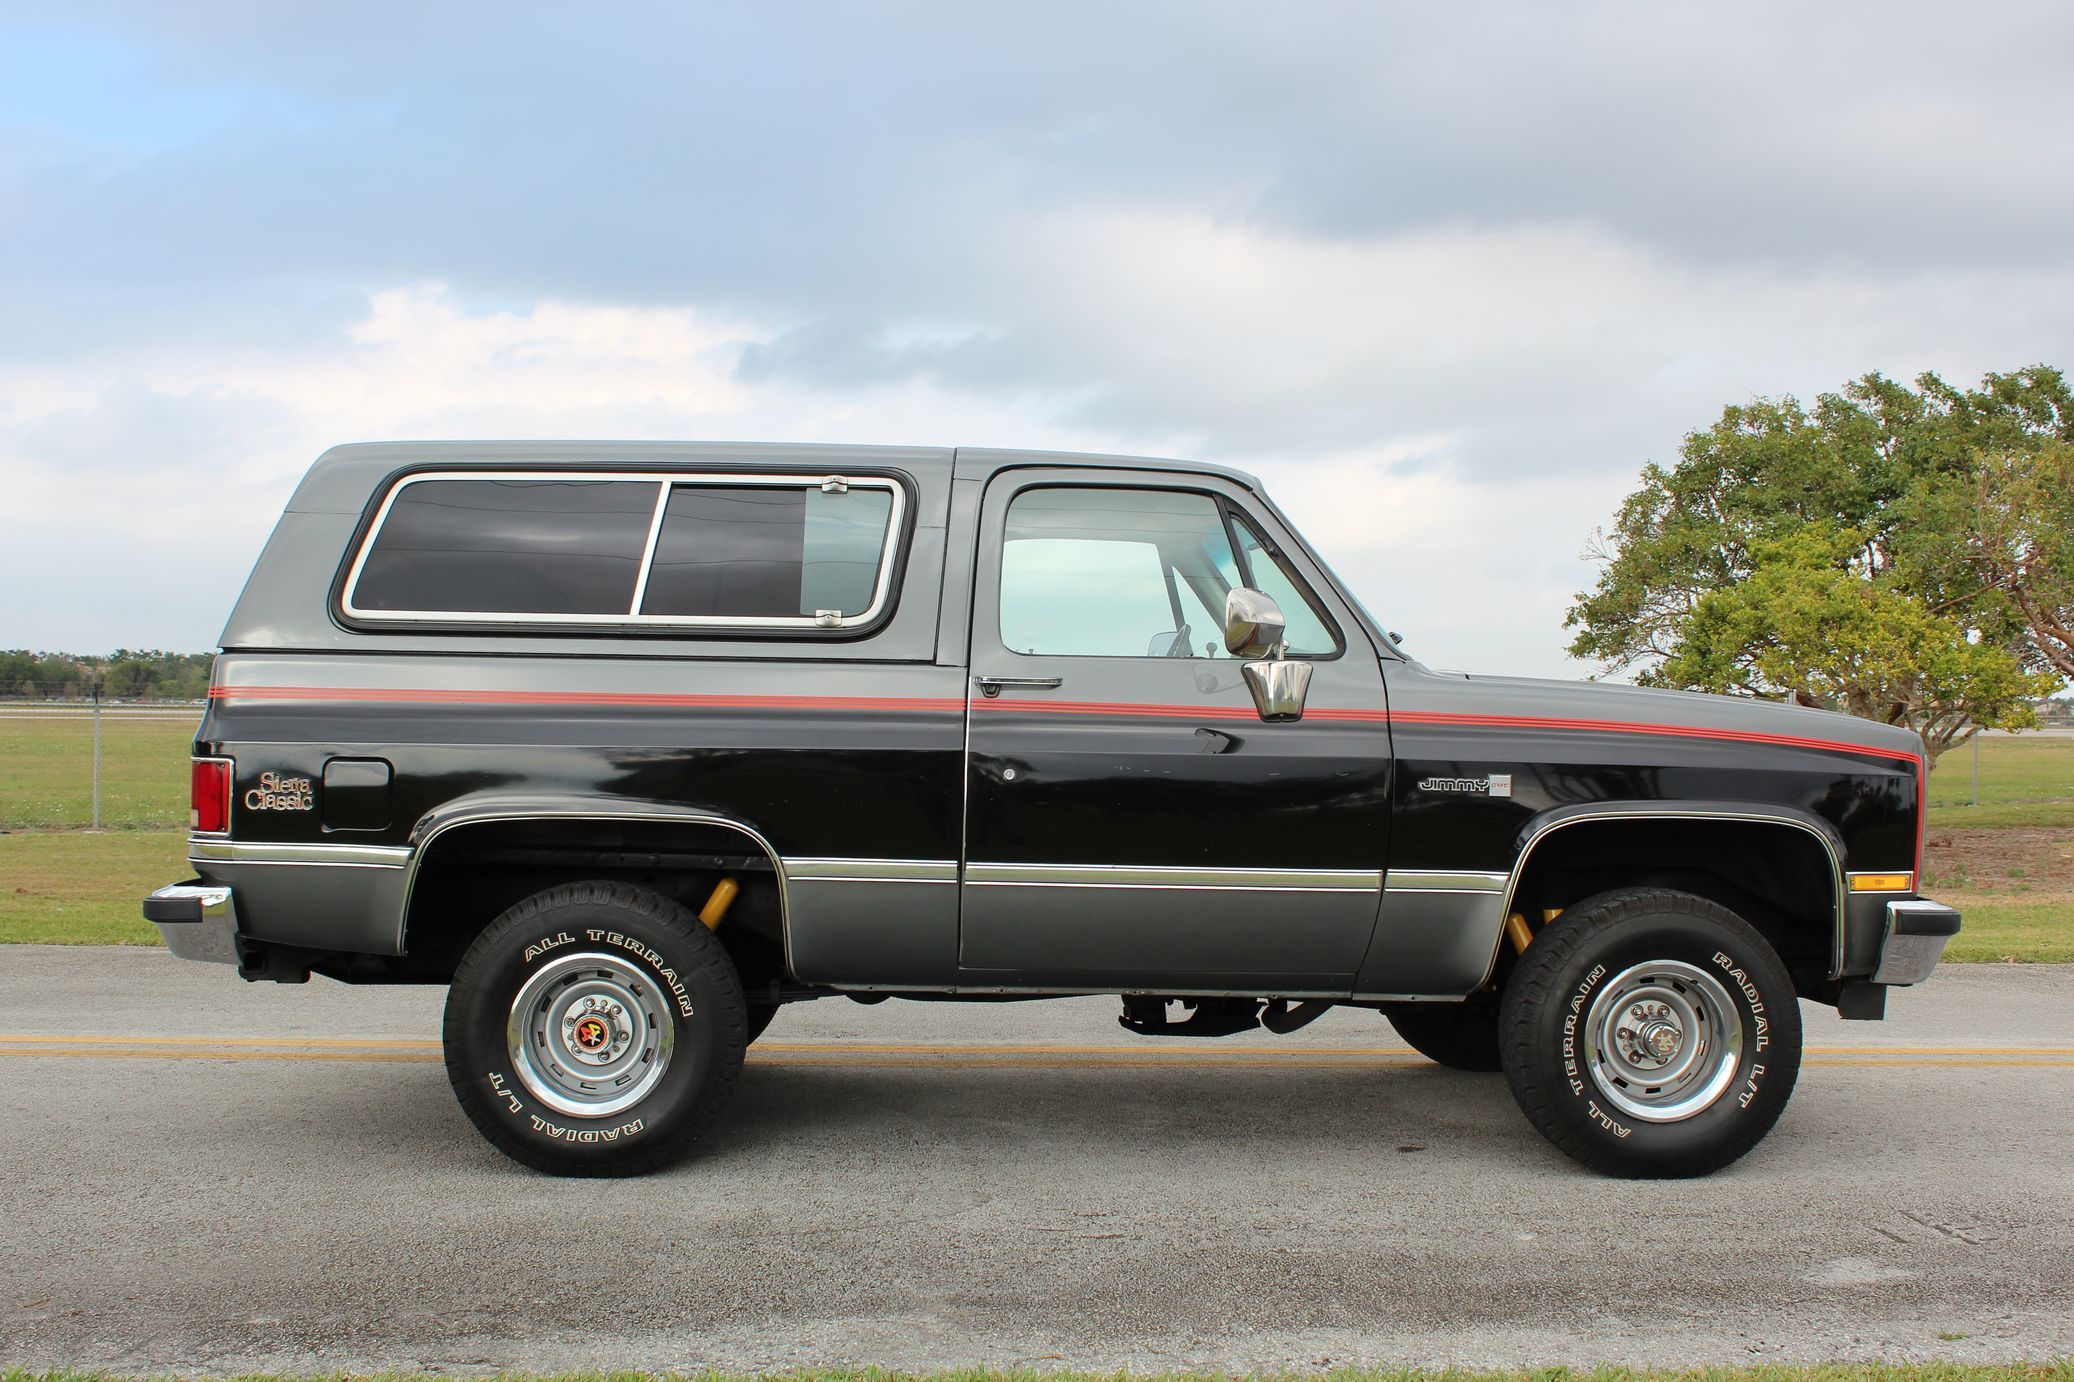 medium resolution of 1987 gmc jimmy 4x4 for sale on bat auctions ending february 19 lot 8 195 bring a trailer